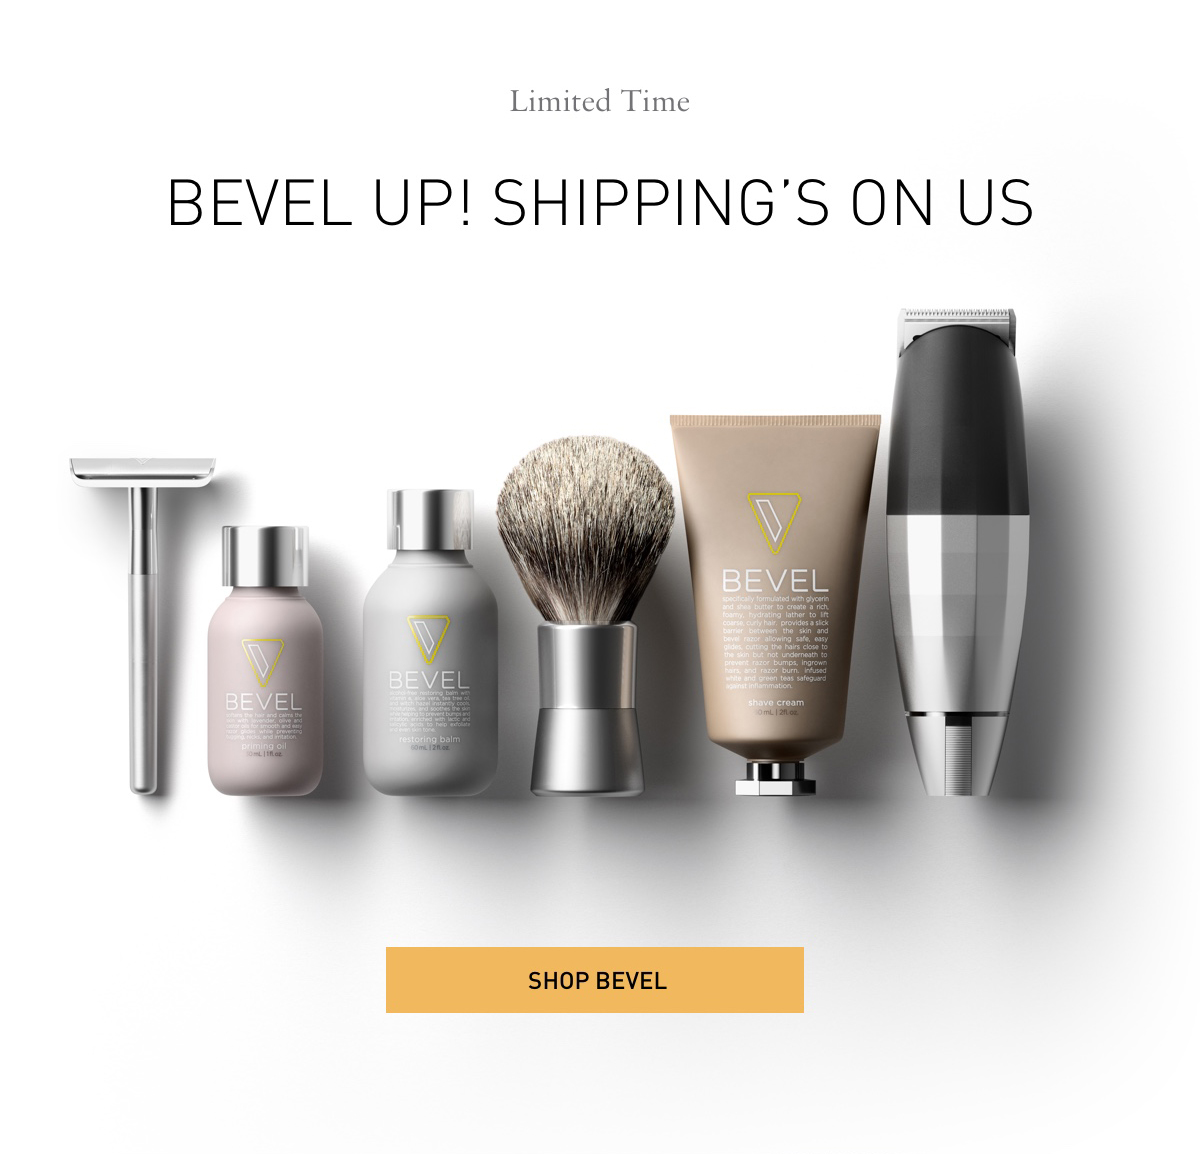 Limited Time BEVEL UP! SHIPPING'S ON US